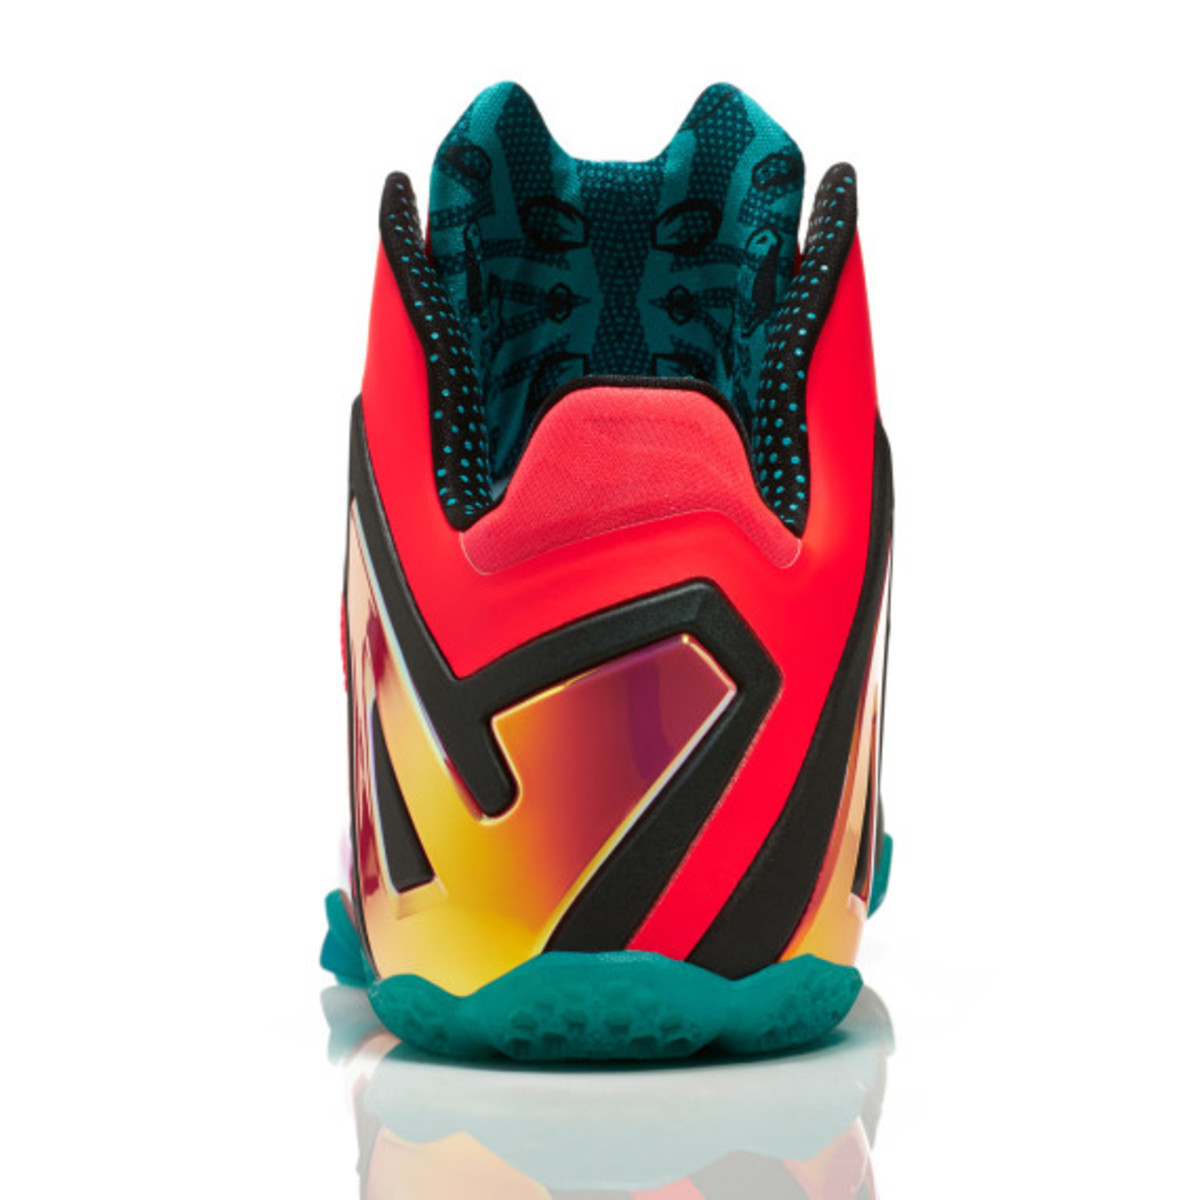 Nike LeBron 11 Elite Hero | Officially Unveiled - 6